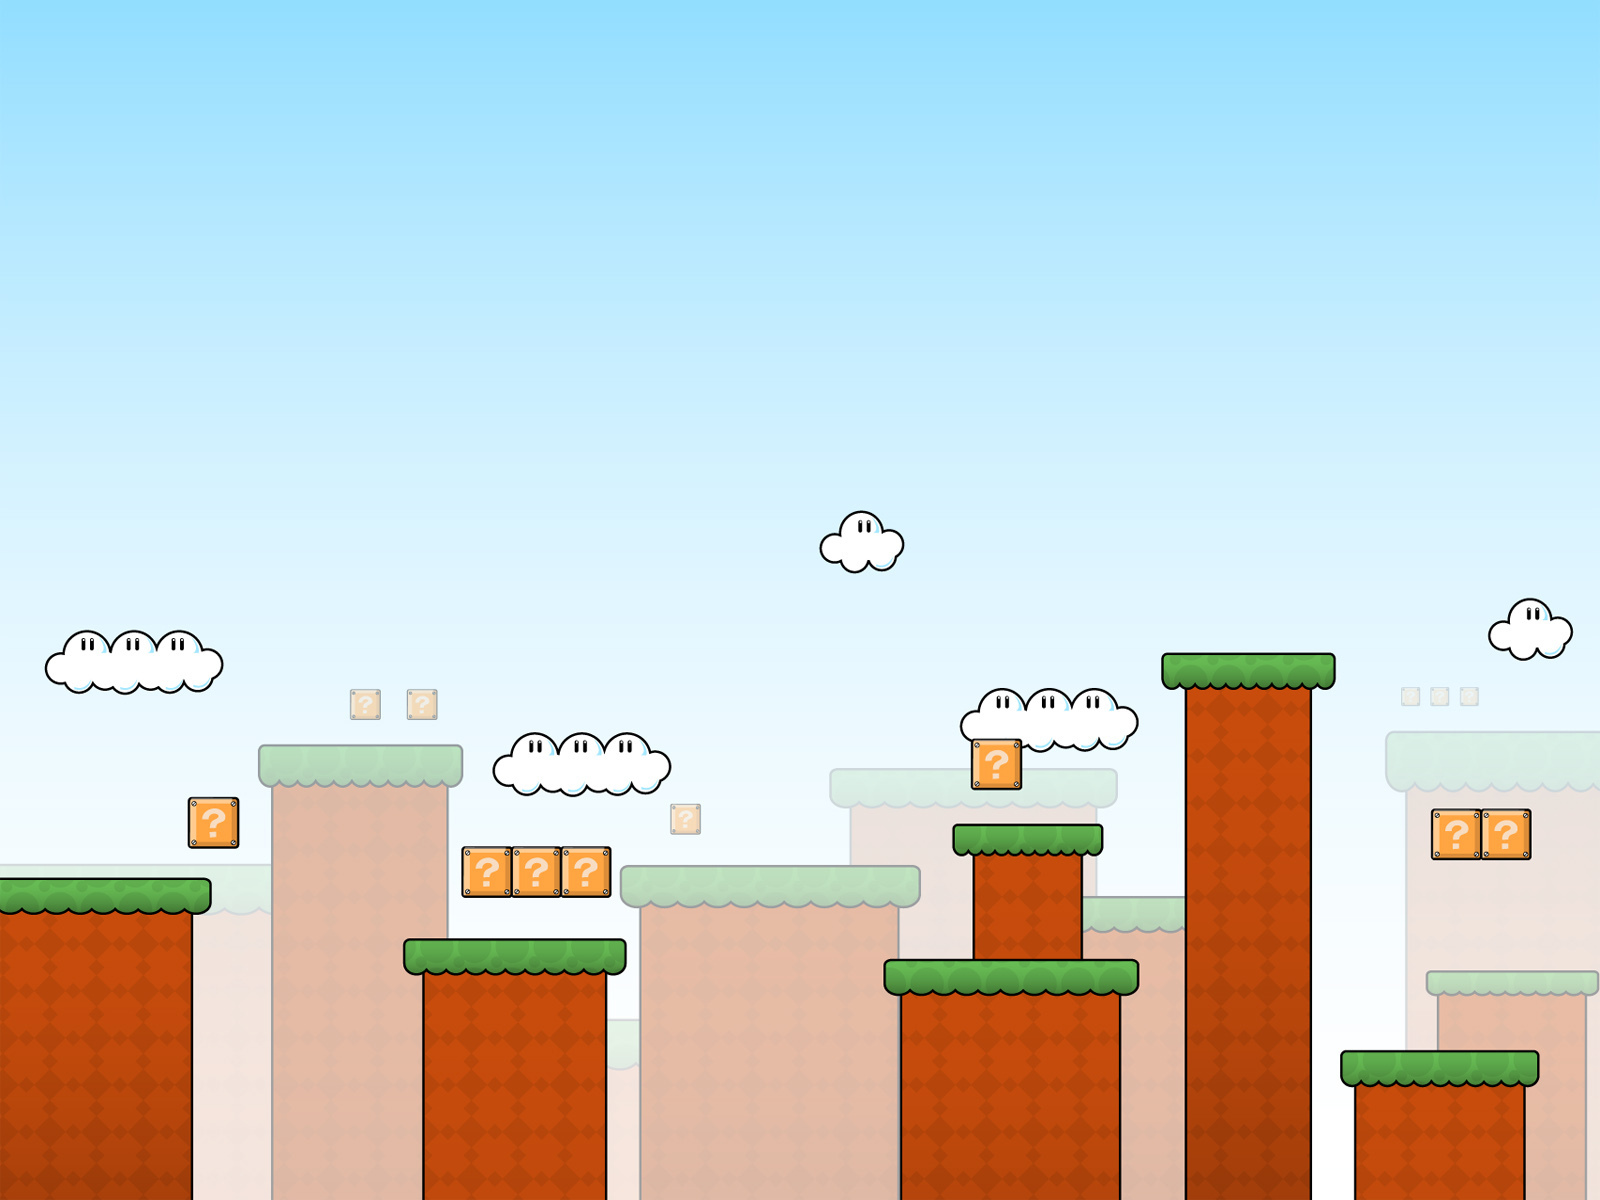 download super mario wallpaper 5102 1600x1200 px high definition